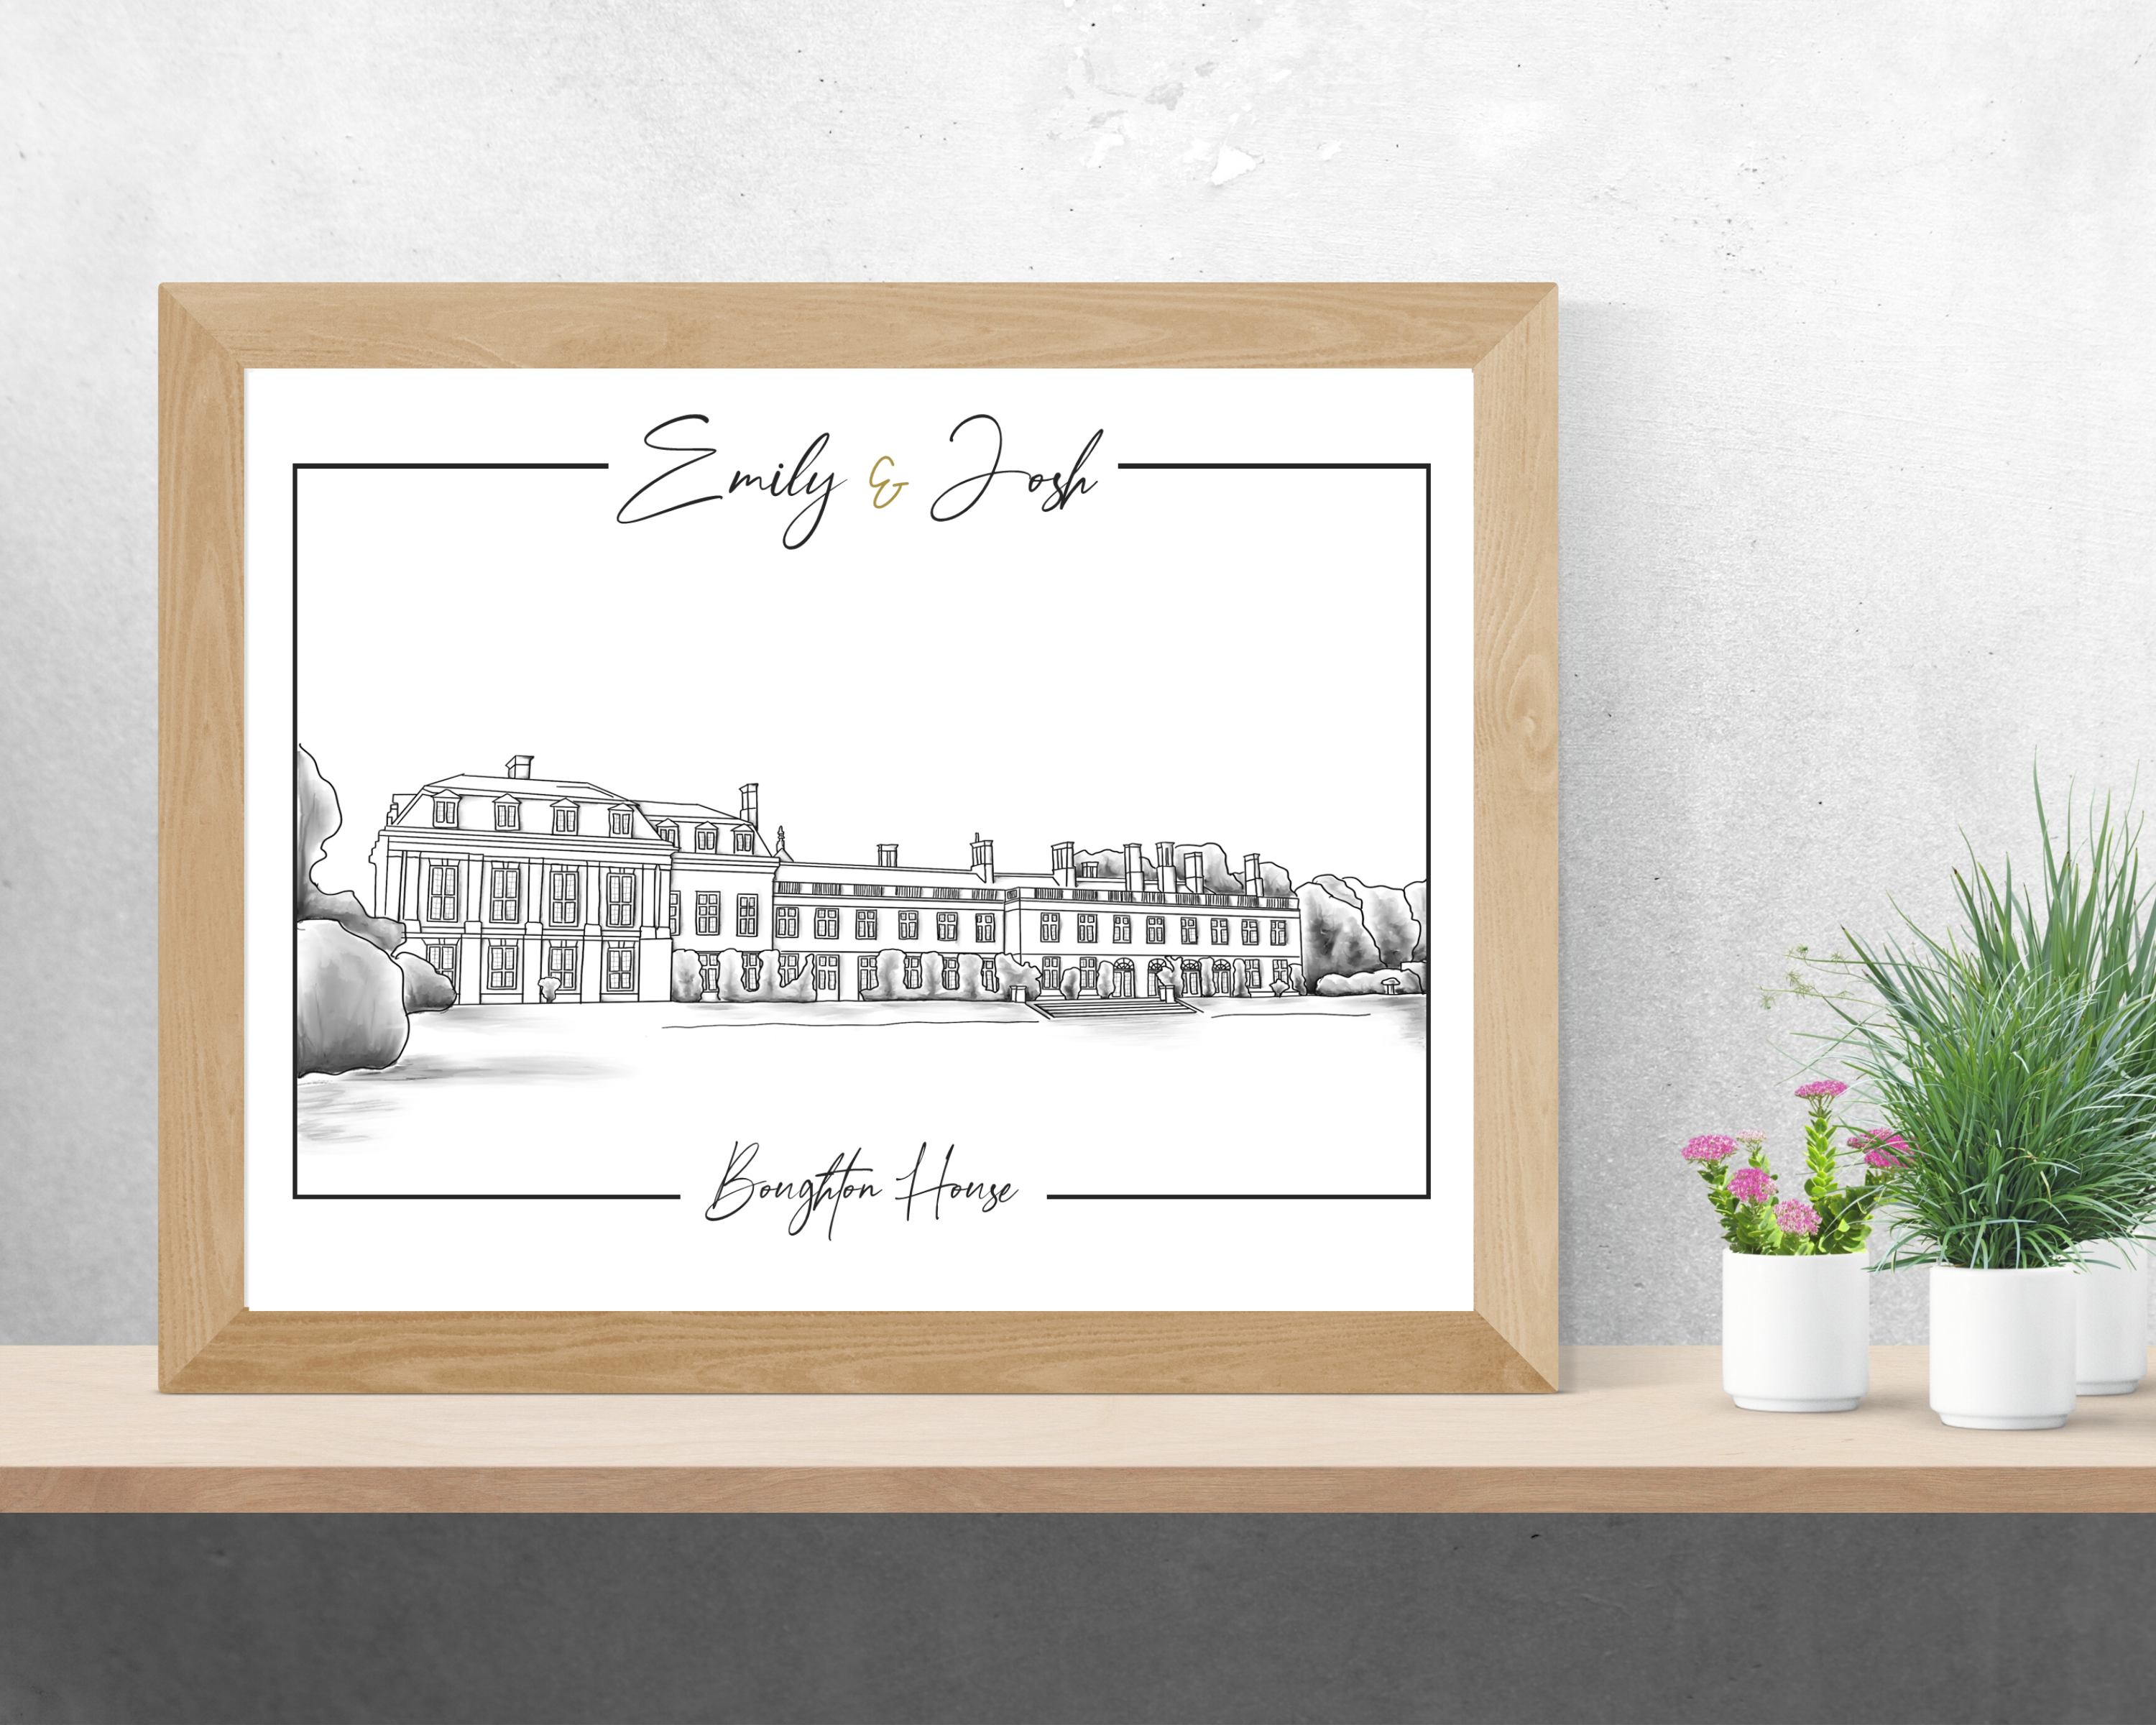 A digitally drawn wedding venue illustration of Boughton House, with the couple's names at the top, in a wooden frame.